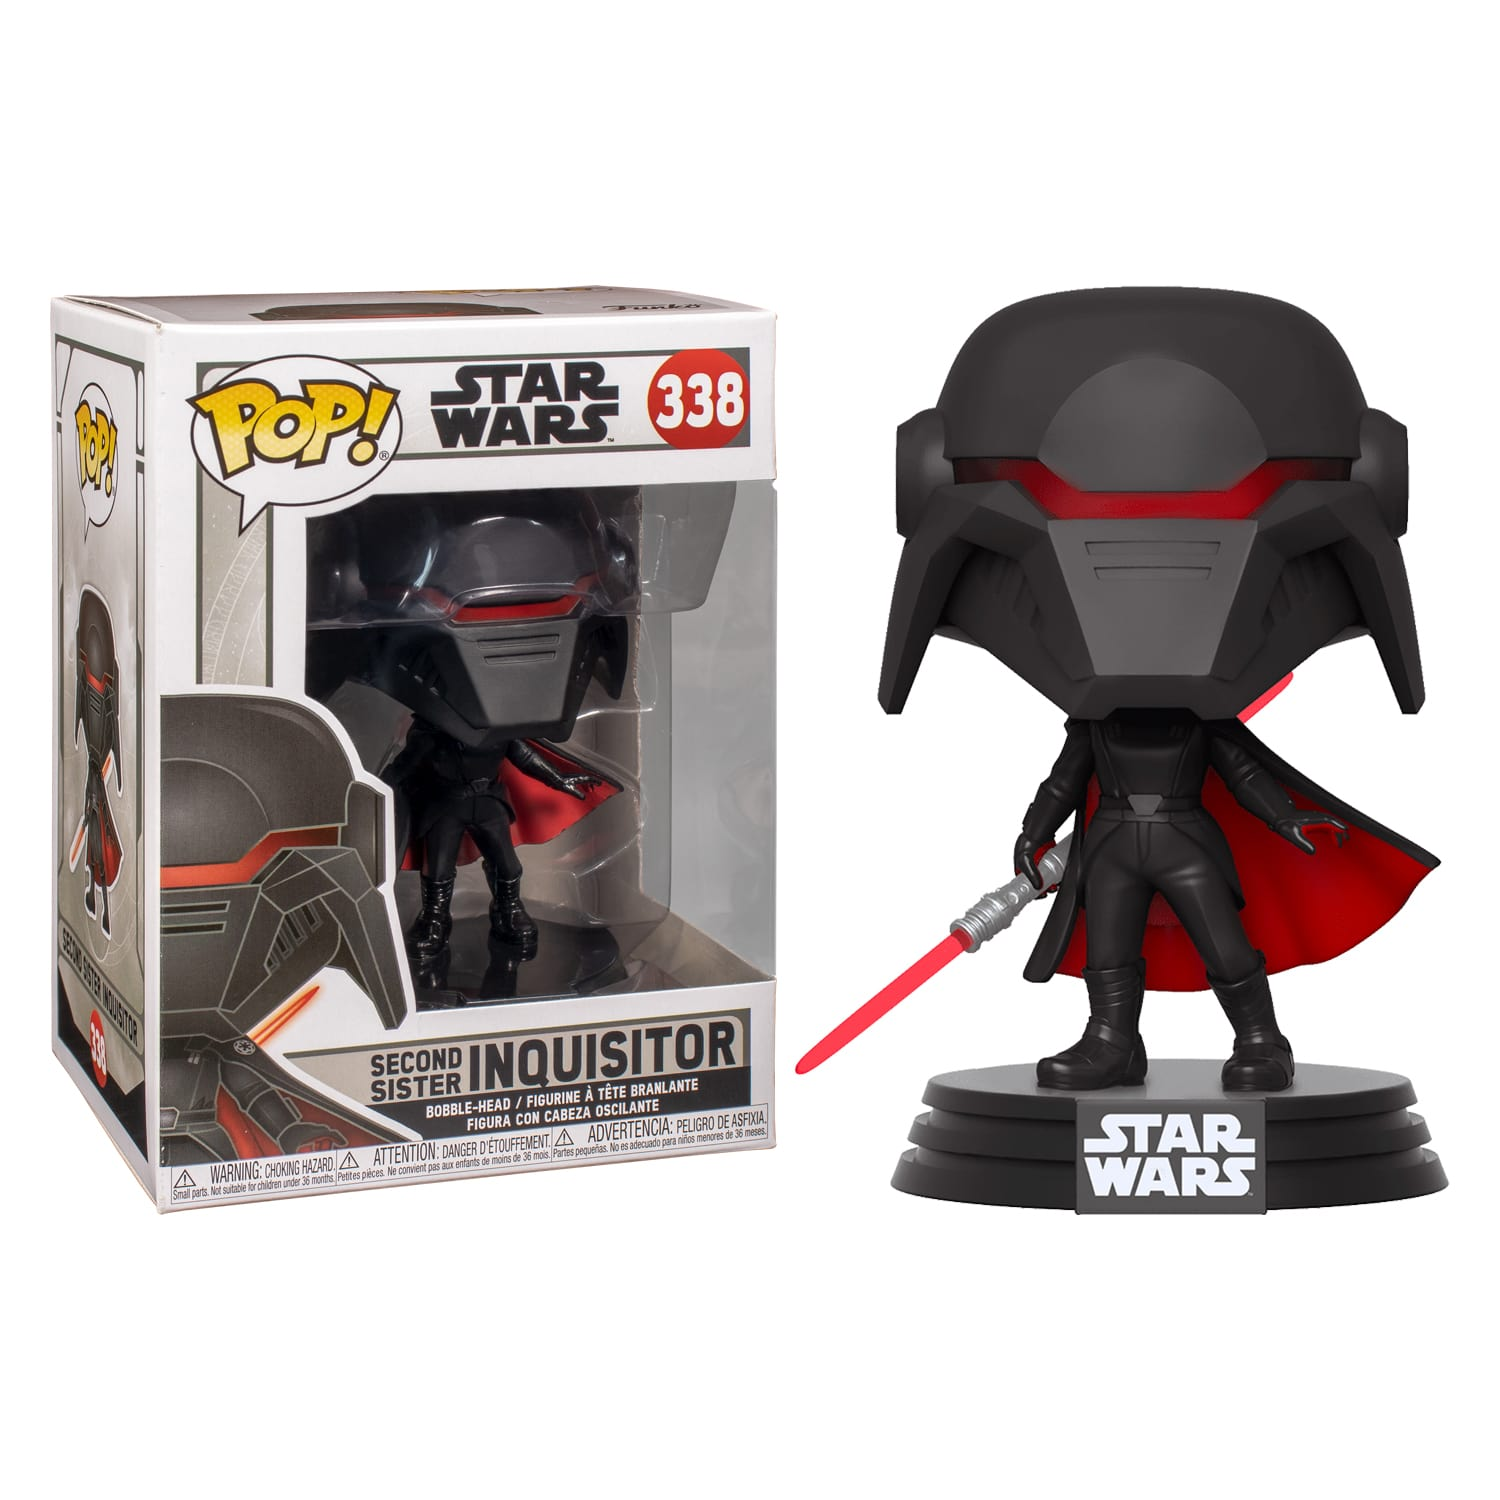 Funko Star Wars Jedi Fallen Order Second Sister Inquisitor Pop Vinyl Figure At Toys R Us